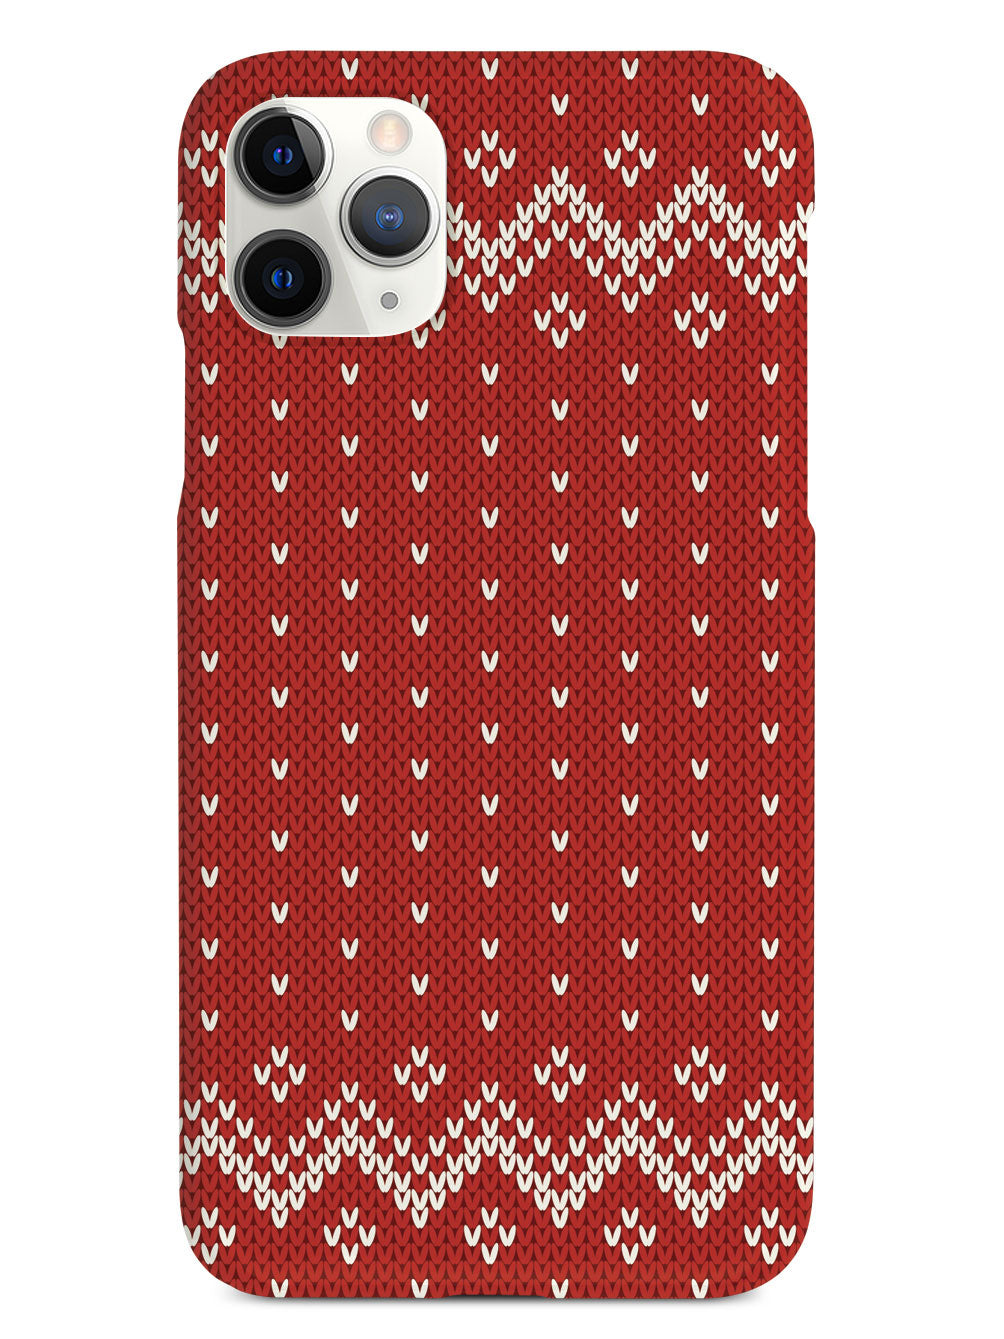 Red and White Sweater Texturized - White Case